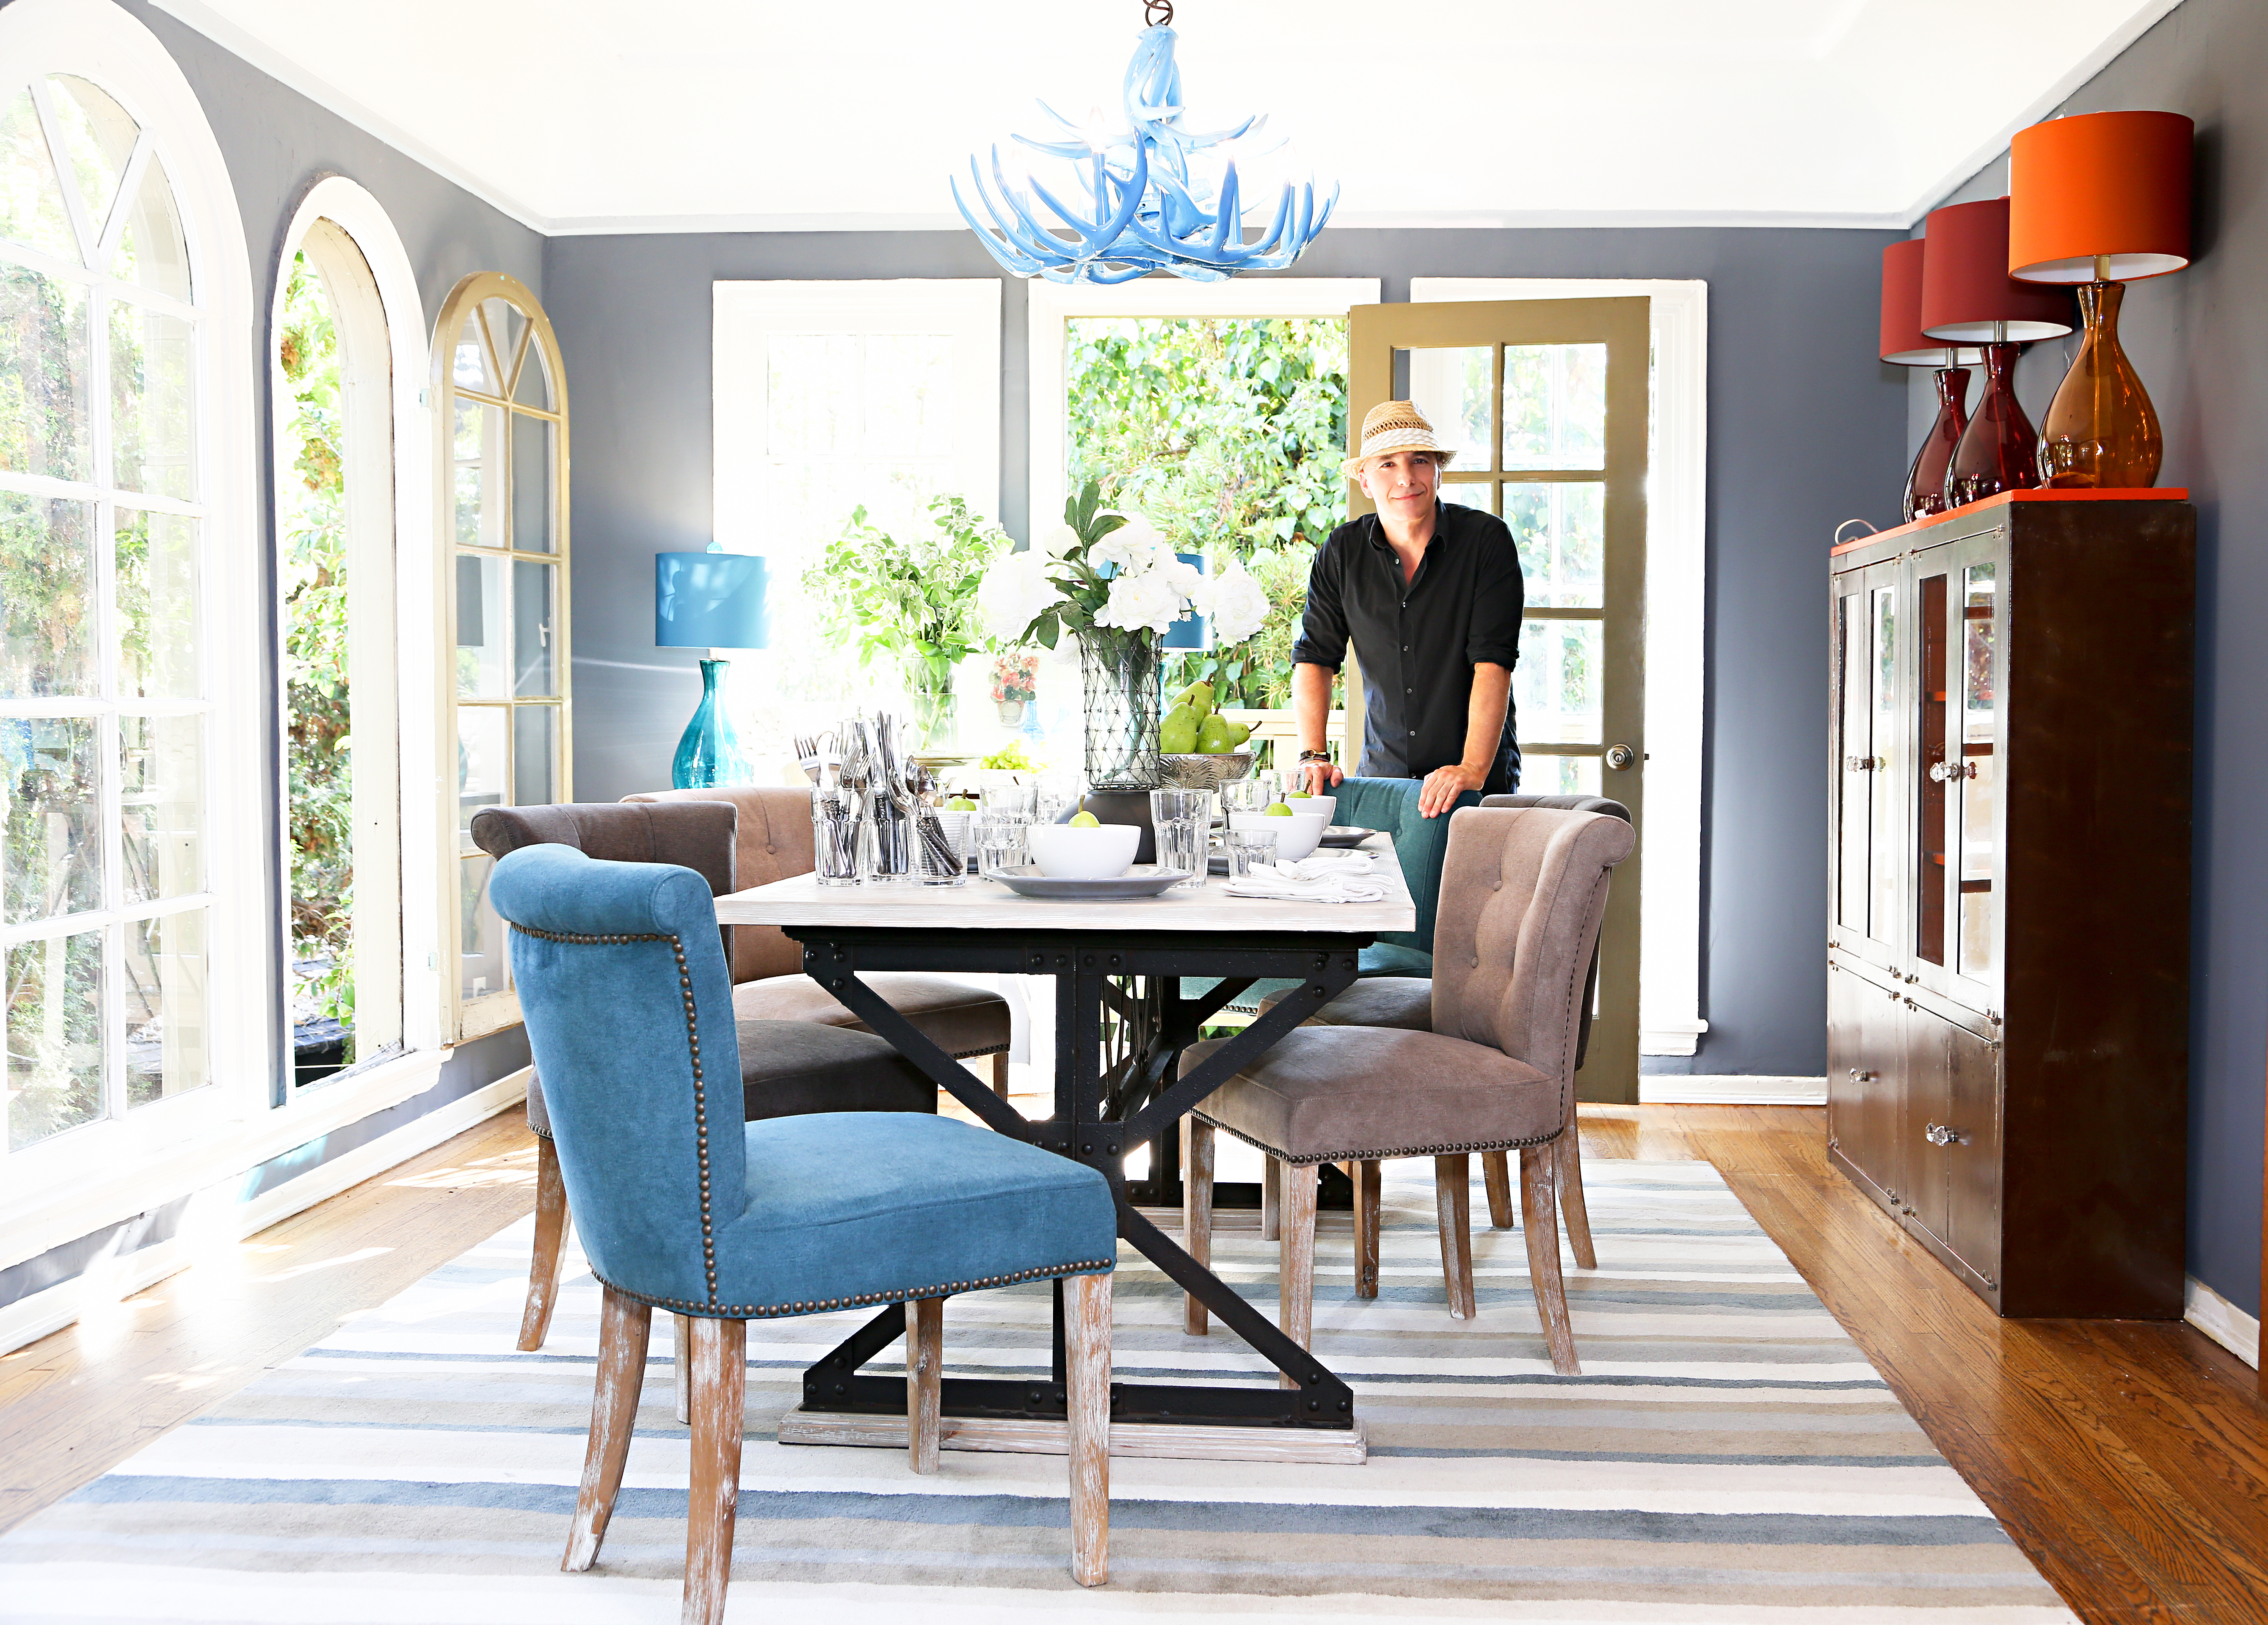 Decorating Your Small Space With Practicality And Style In Mind Angelo Surmelis Dining Room 1